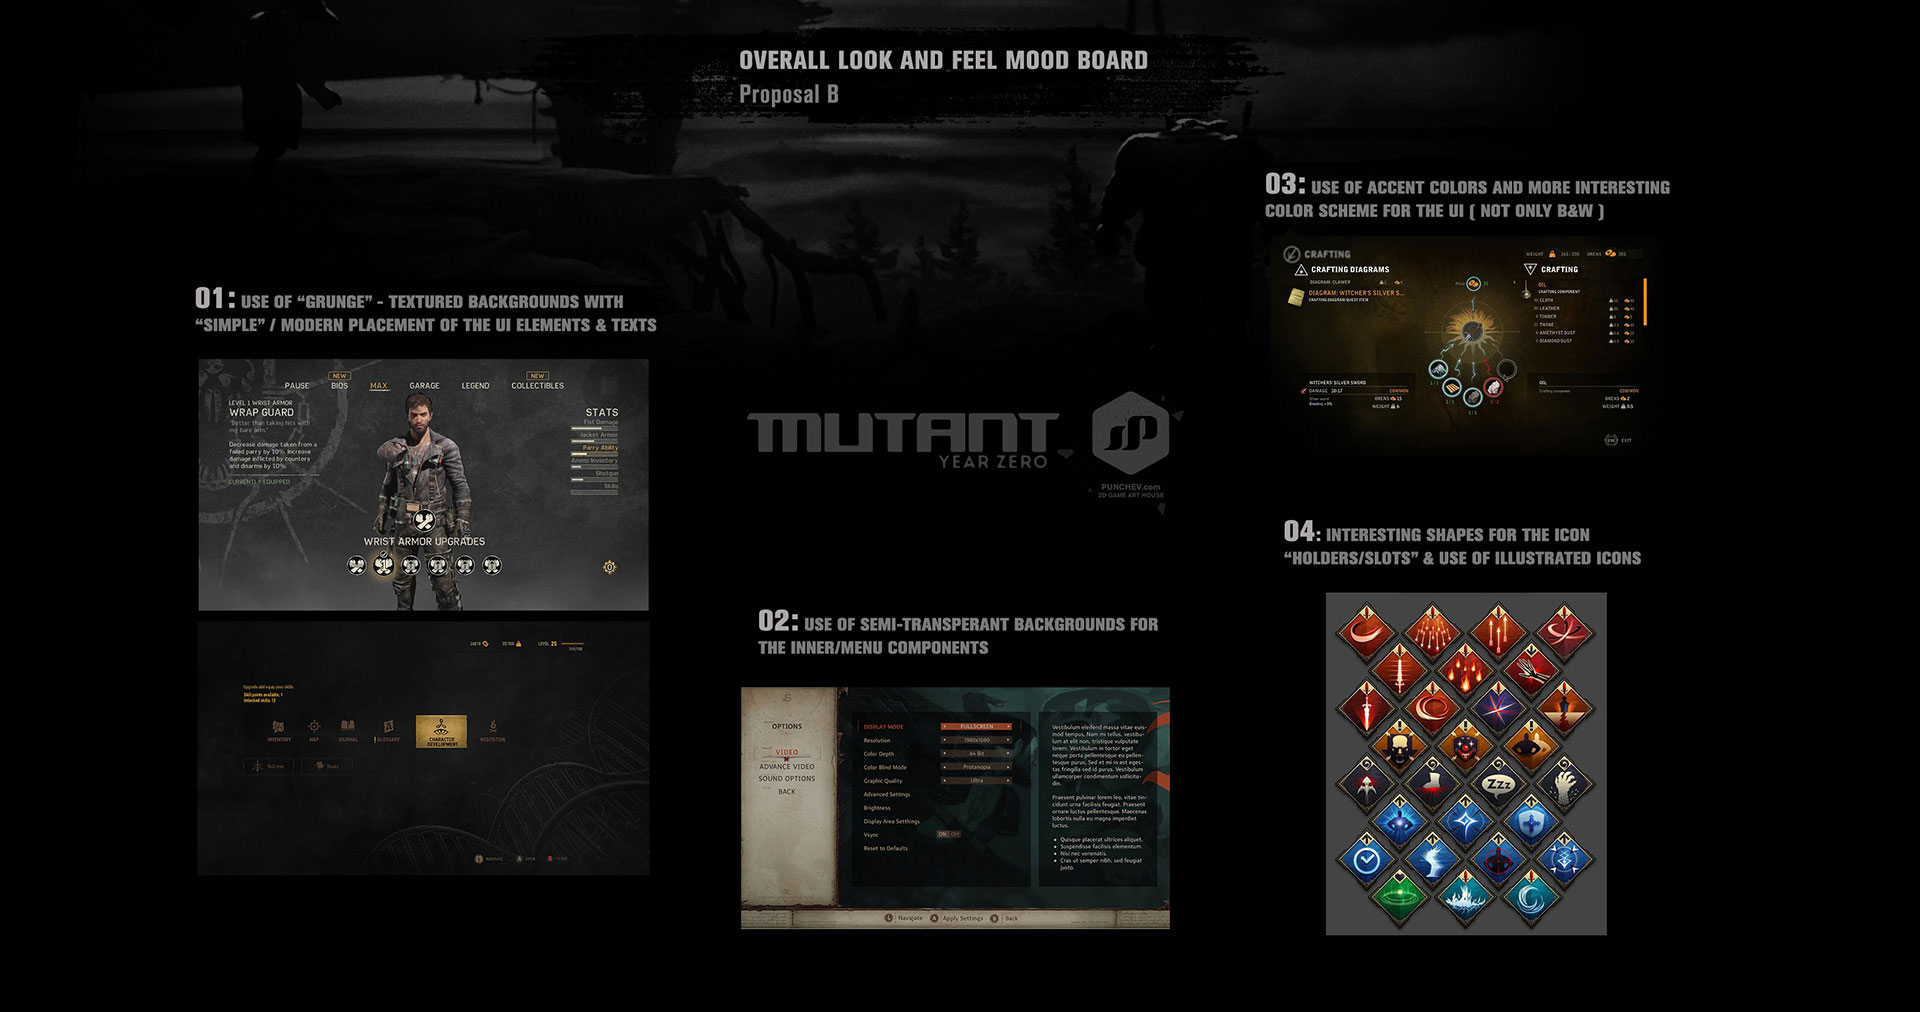 funcom-ui-gameinterface-gameart-roadtoeden-ps4-xbox-tactical-adventure-game-xcom-turn-based-gameux-game-experience-moodboard01